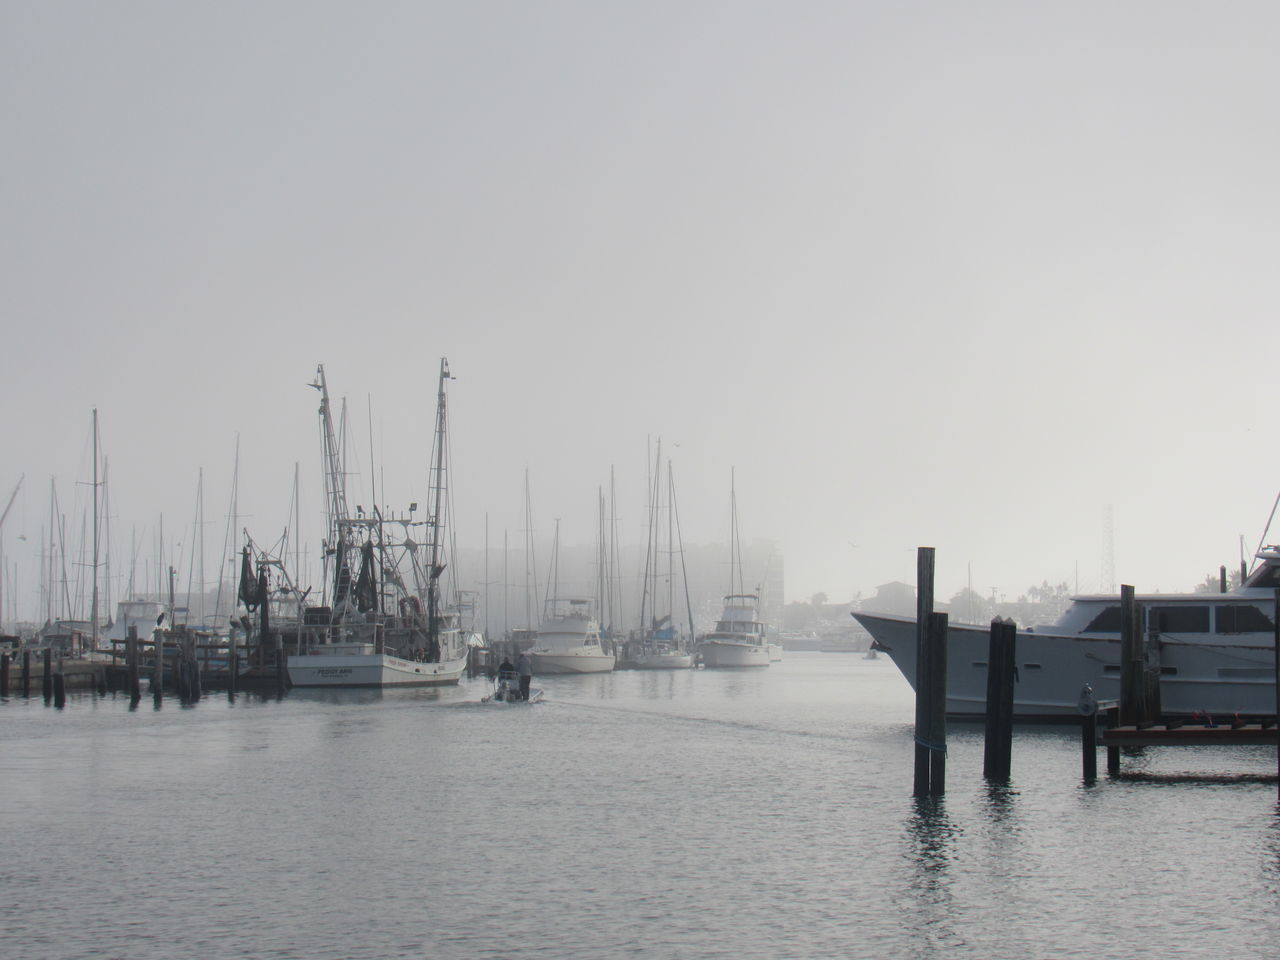 Beauty In Nature Day Foggy Day Harbor Mast Mode Of Transport Moored Nature Nautical Vessel No People Outdoors Sailboat Sea Sky Transportation Water Waterfront White Sky